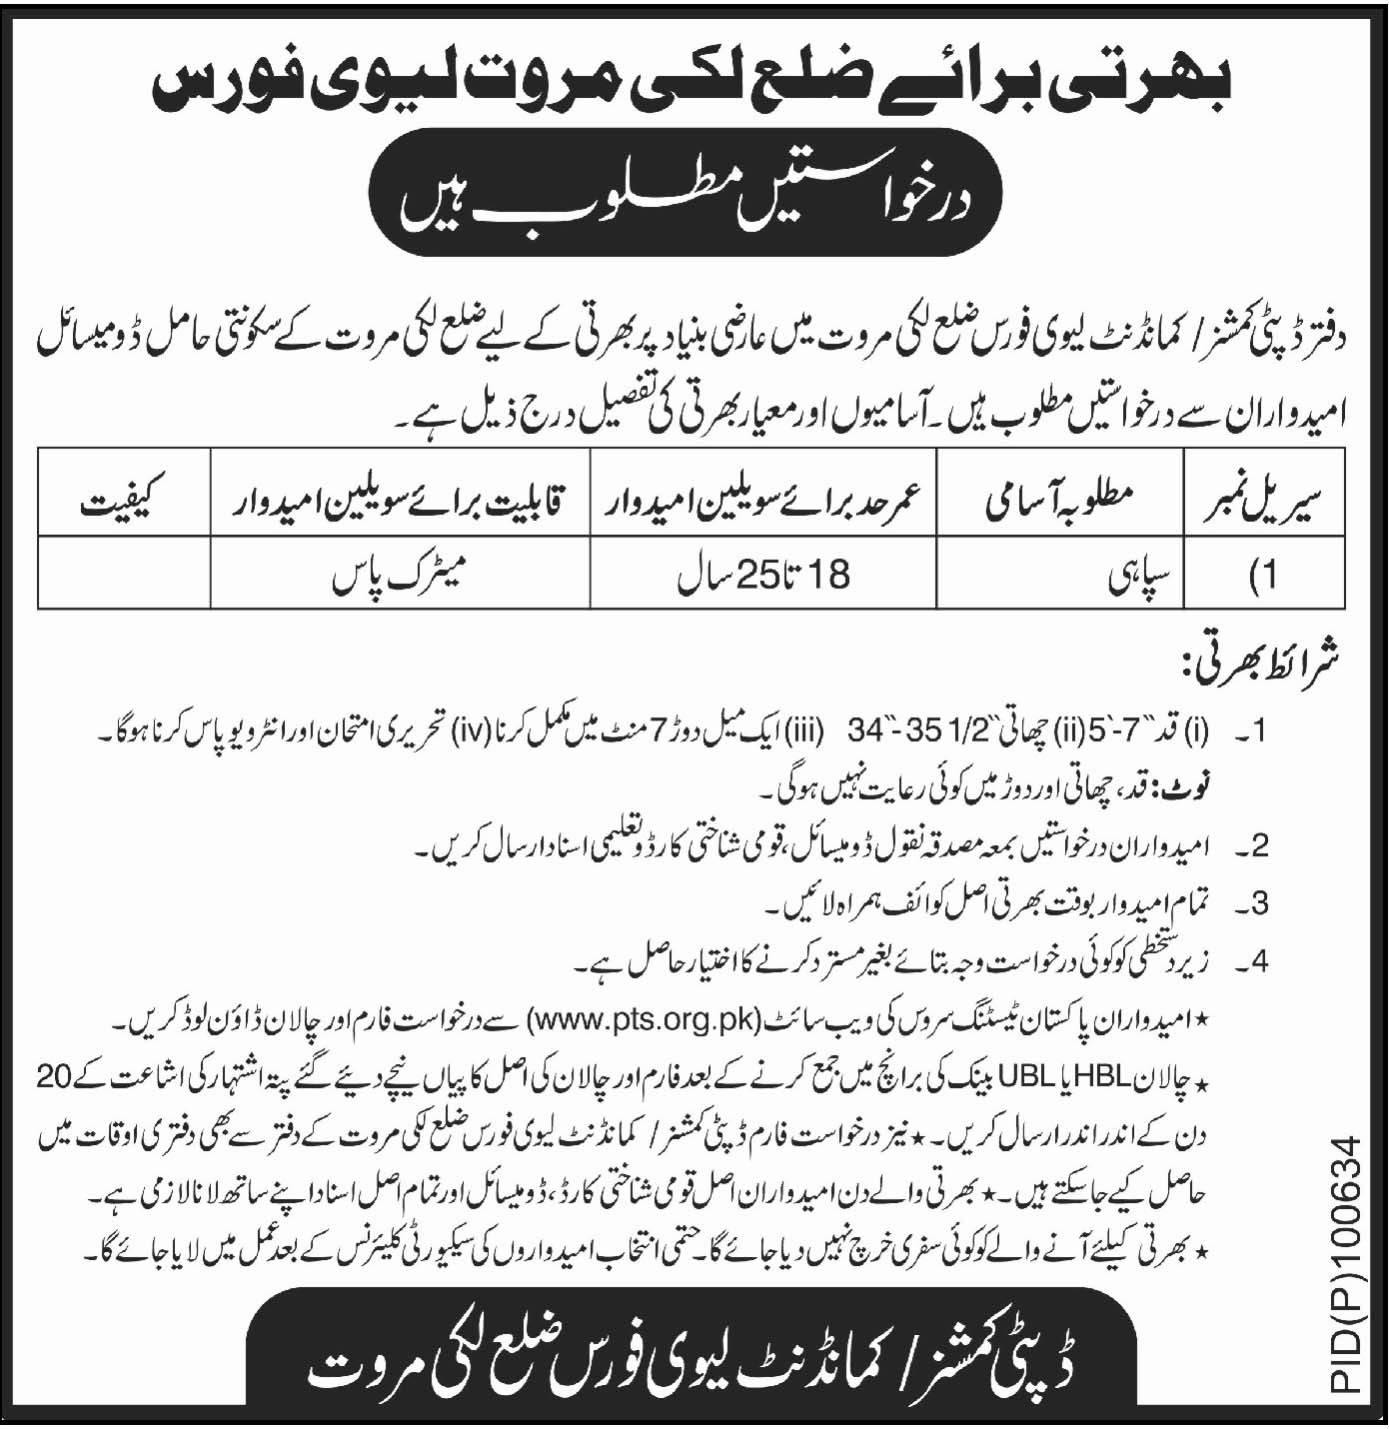 PTS Lakki Marwat Levies Force Jobs 2018 Roll No slips Download Online Test Date